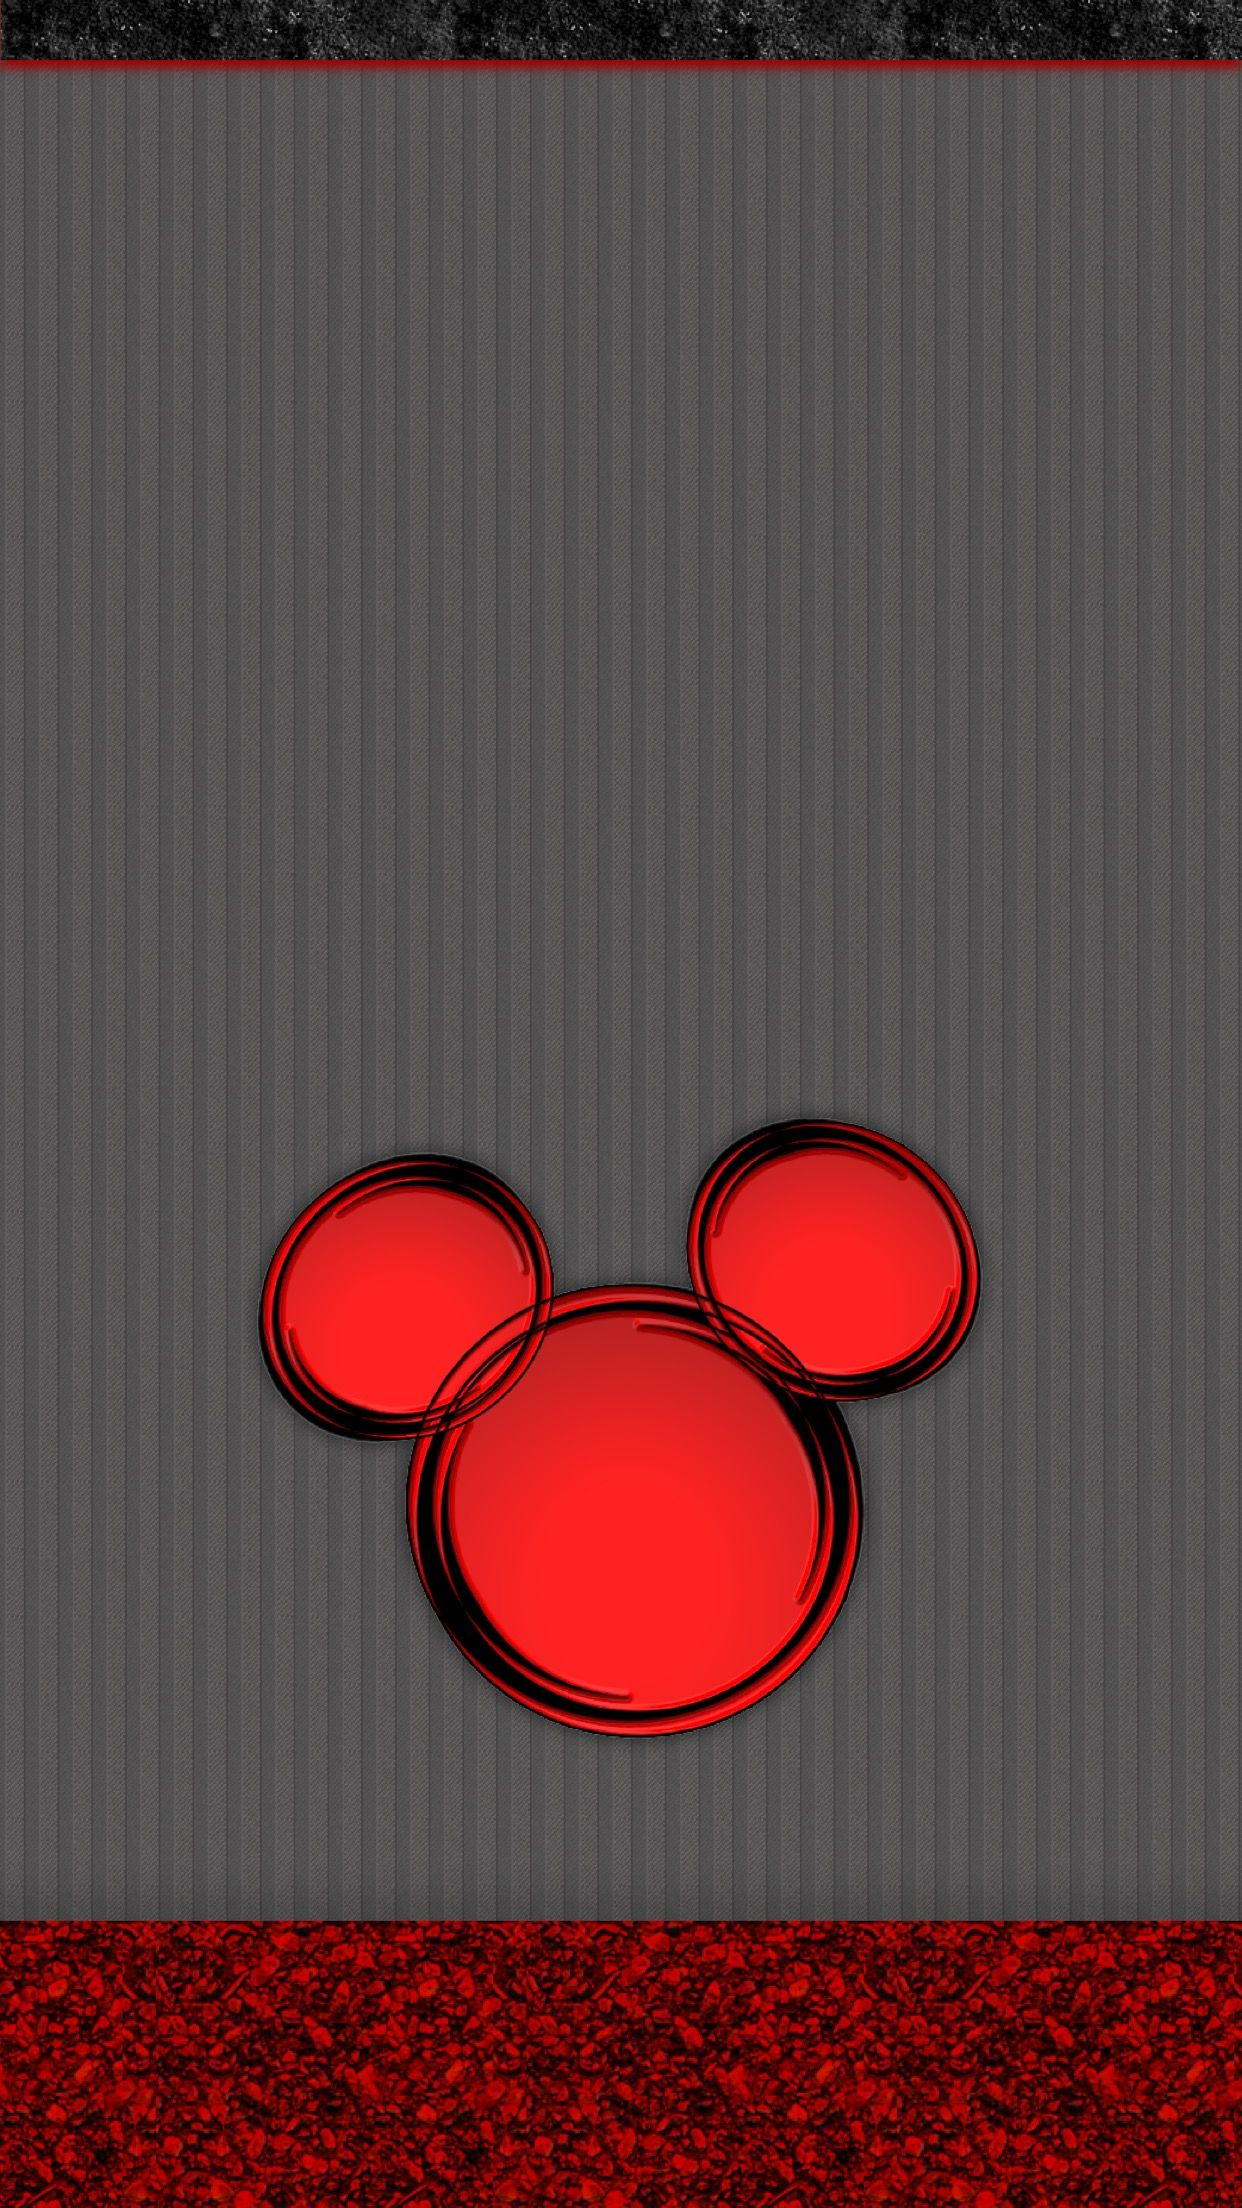 Wallpaper iphone mickey - Mickey Minnie Mouse Iphone Wallpaper Iphone 6 Dyi Screens Several Wall